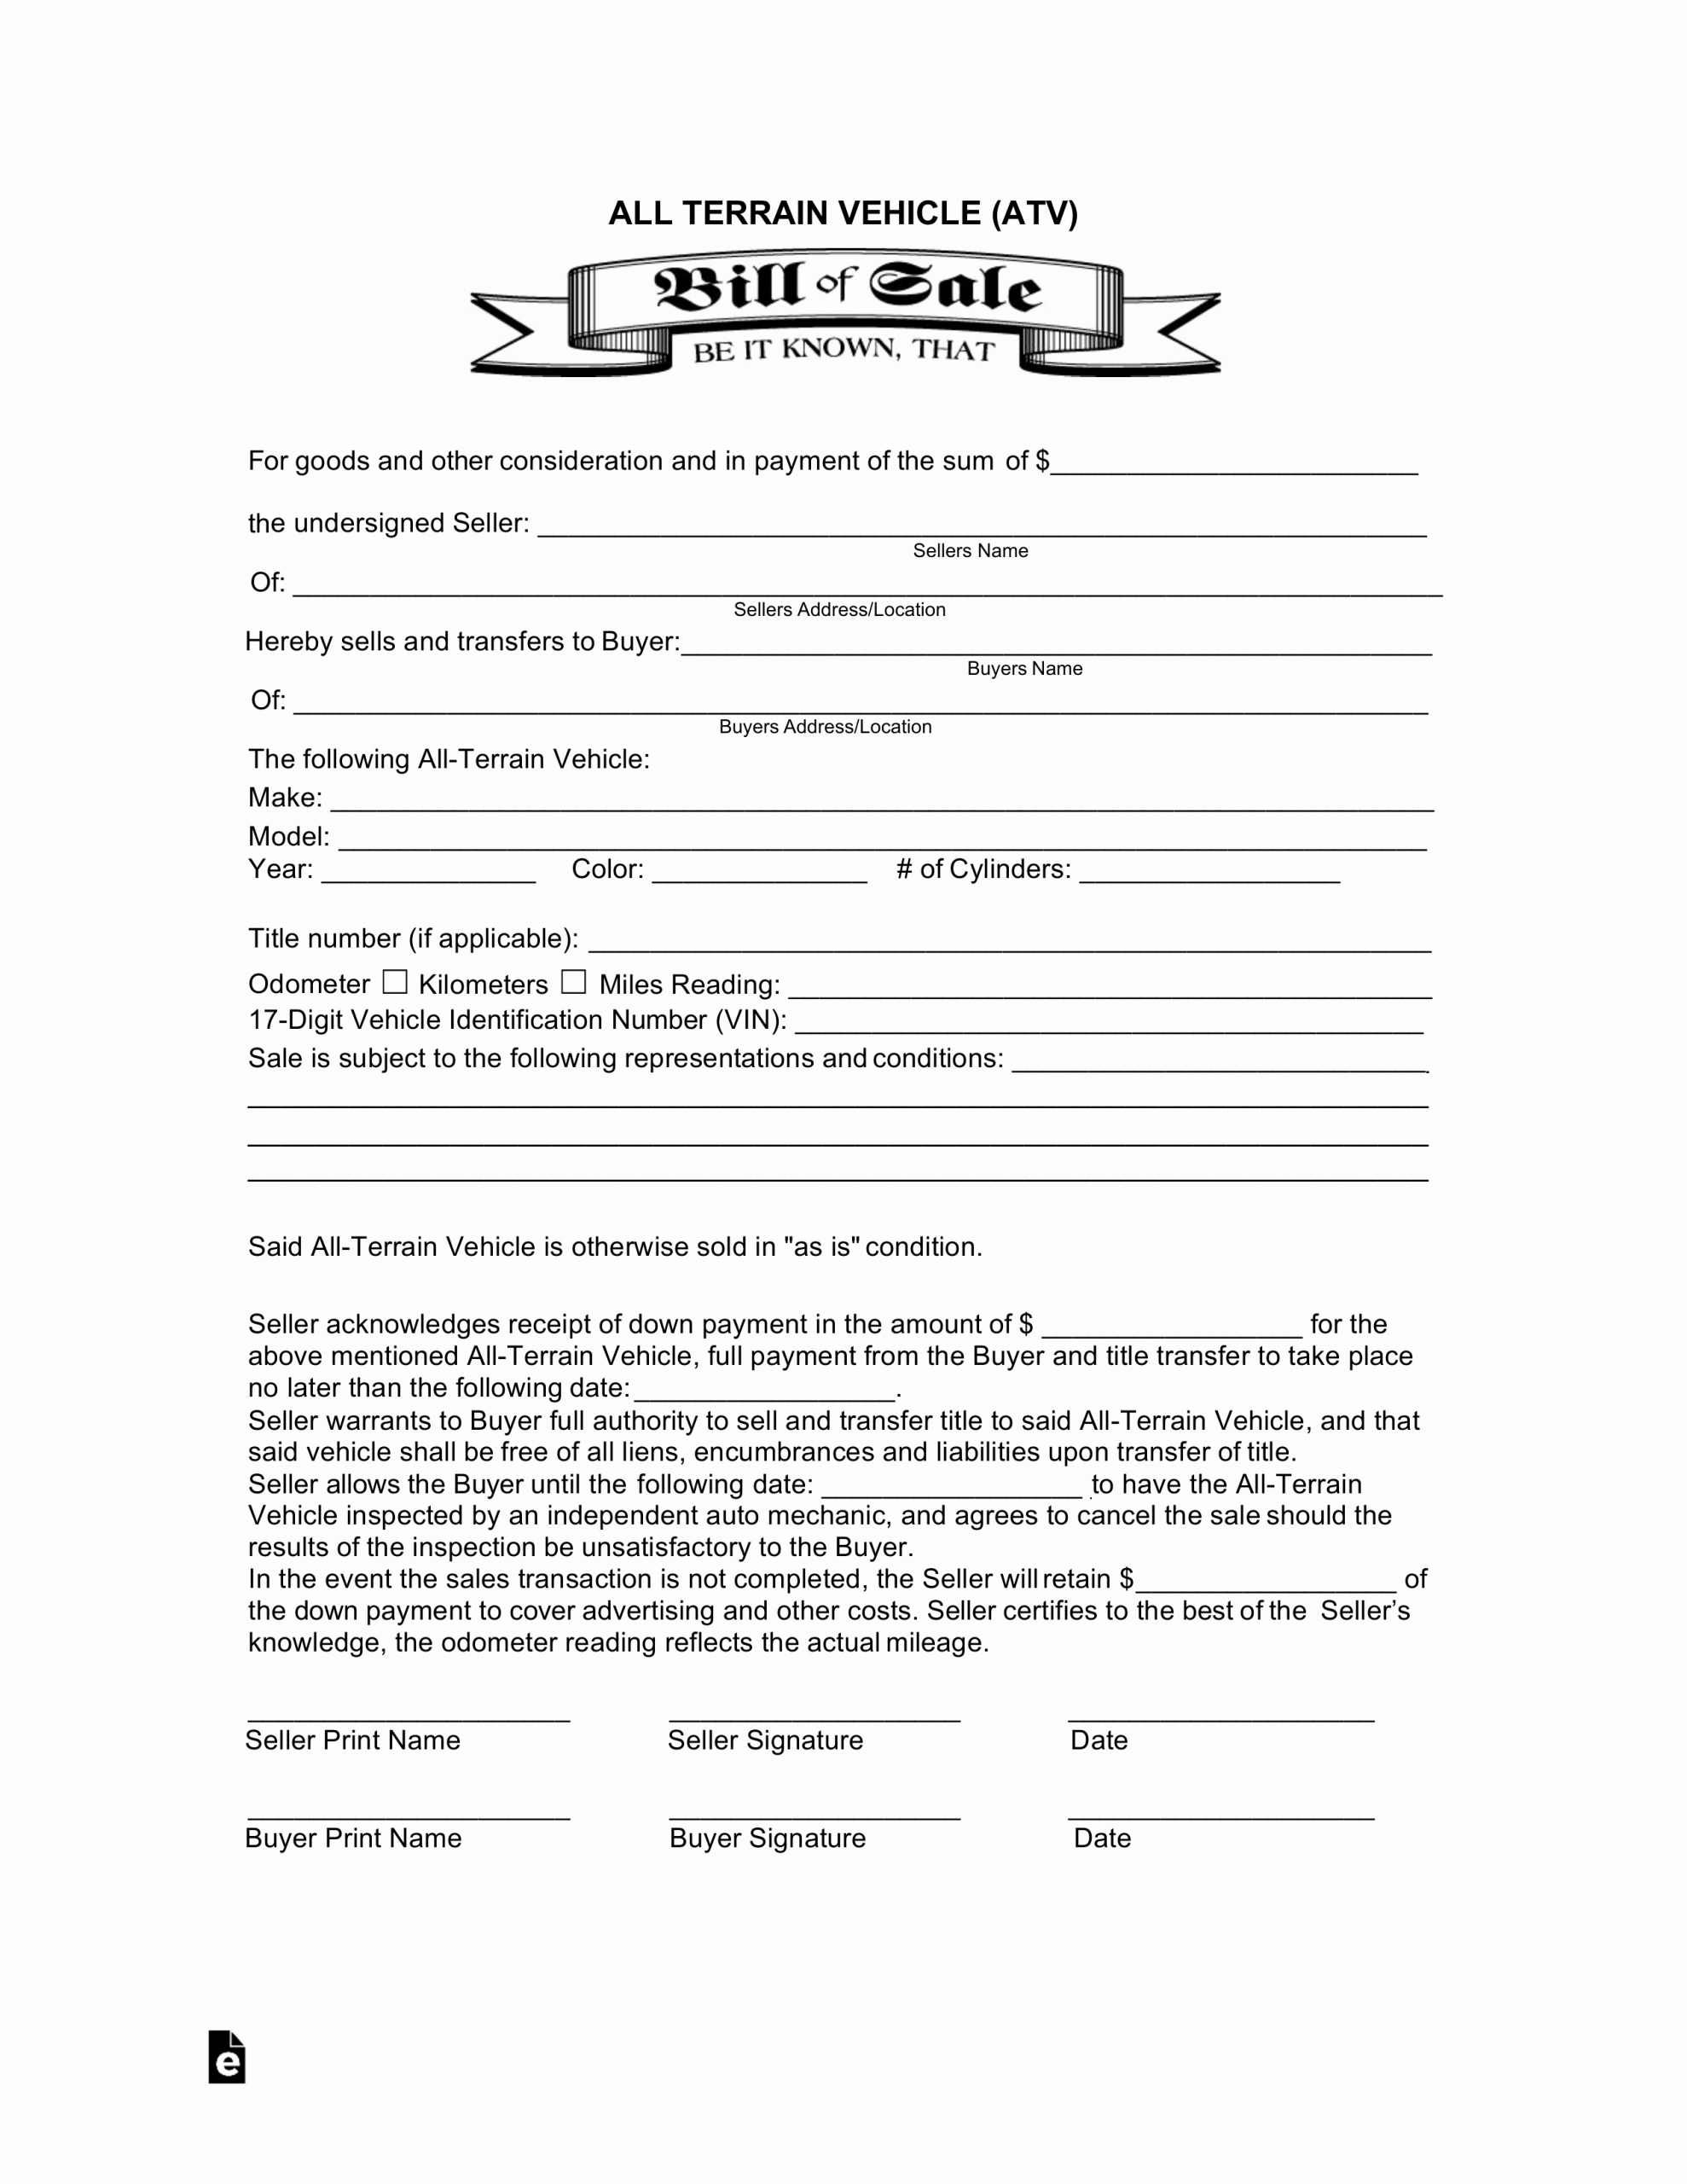 Alabama Vehicle Bill Of Sale Gift Awesome All Terrain Vehicle atv Bill Of Sale form